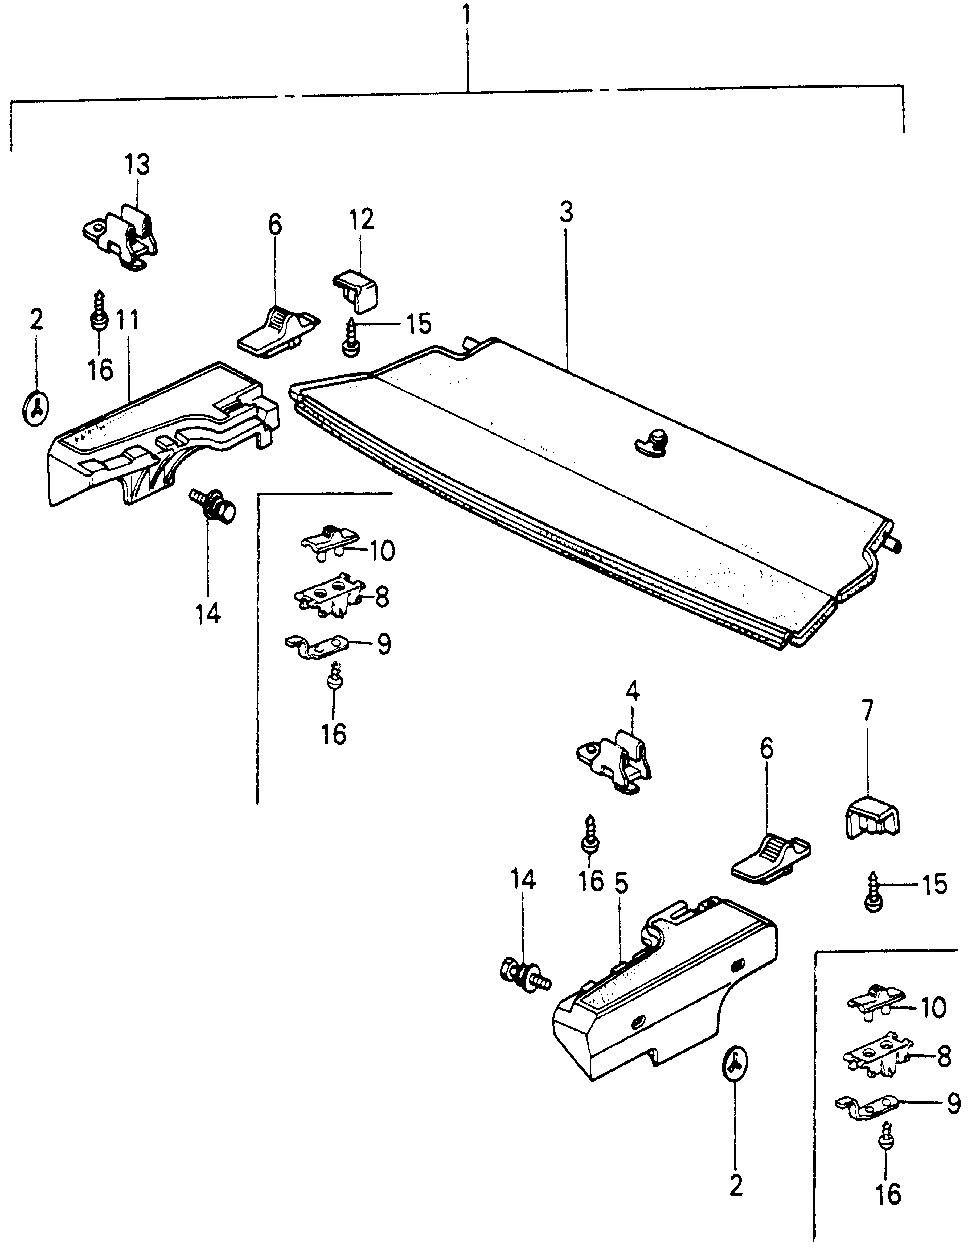 06838-SA0-812ZD - SHELF KIT, RR. *R32L*(SINCERE RED)